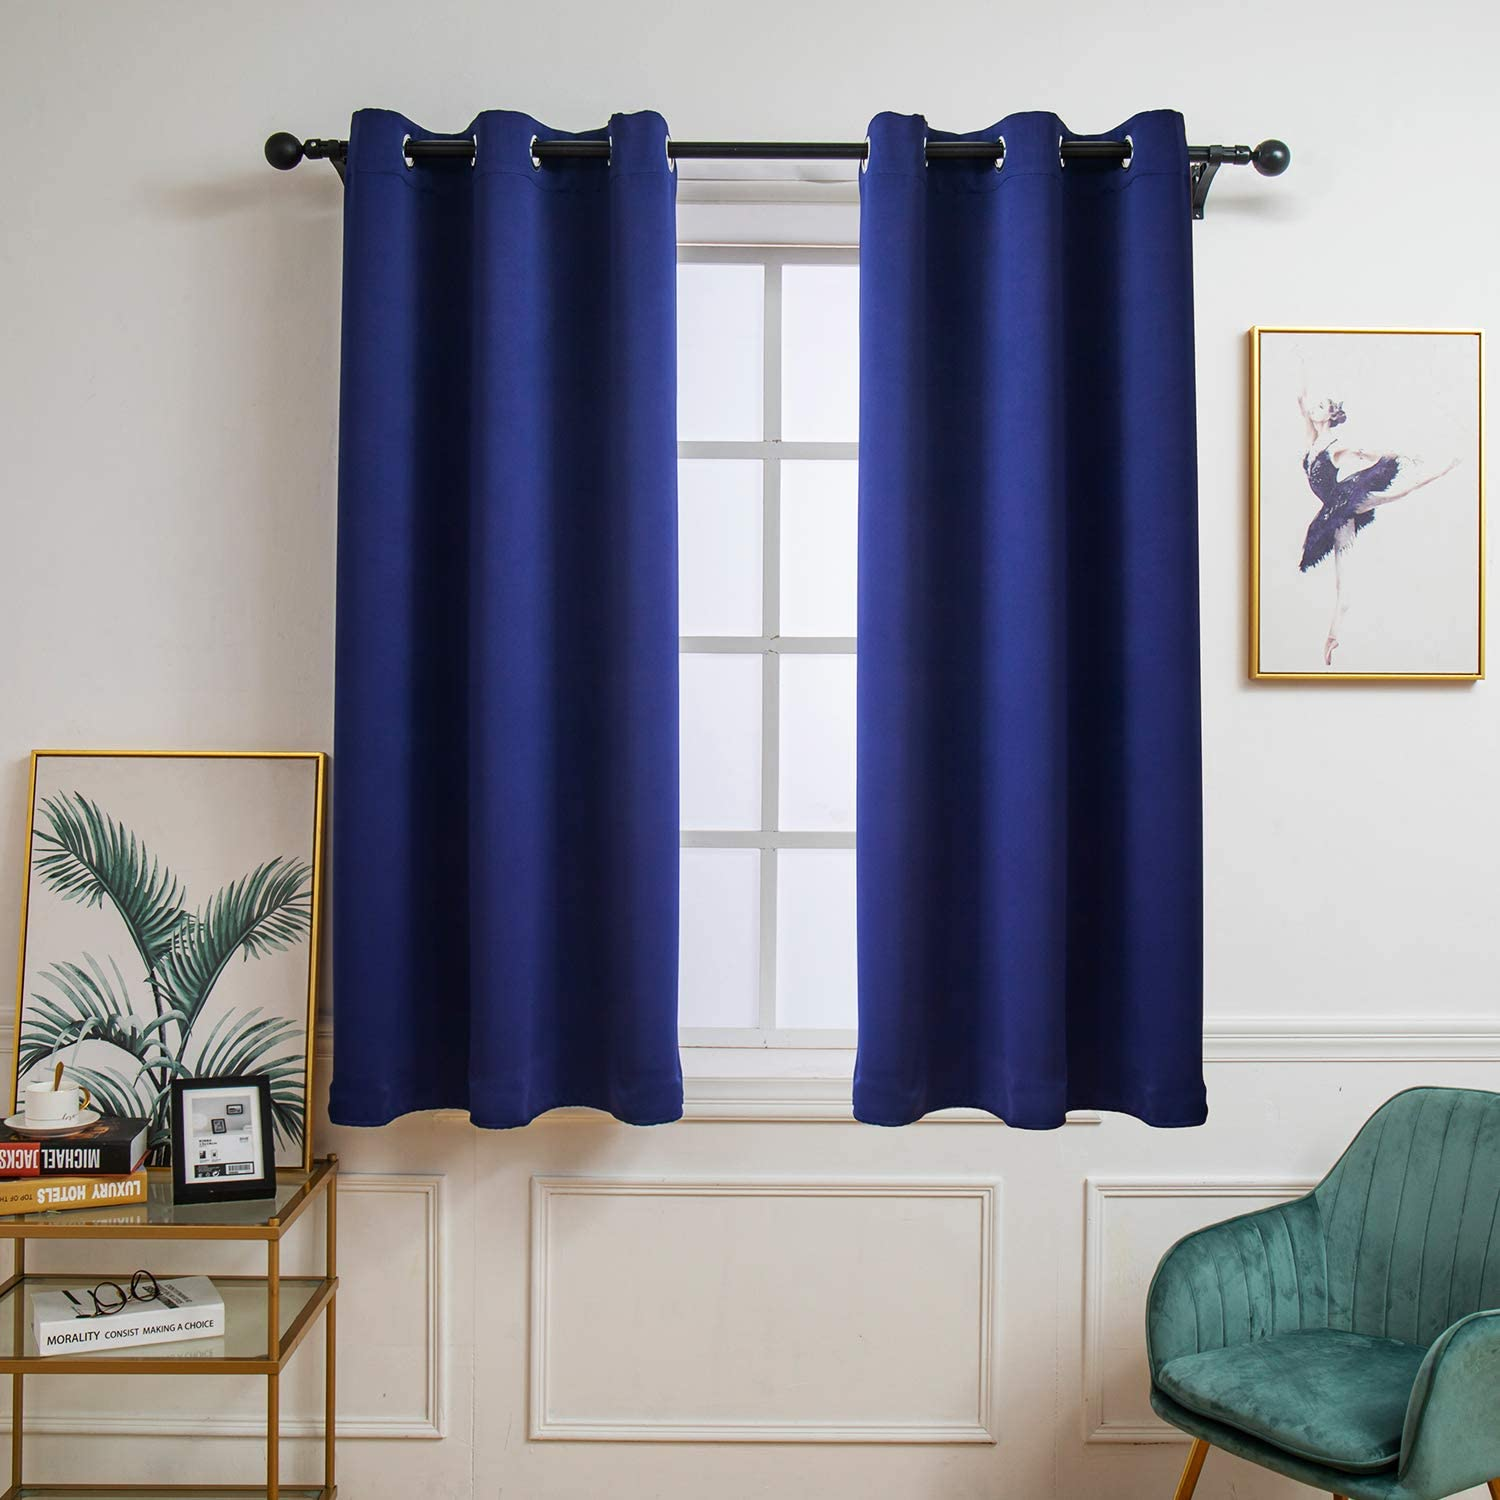 HIGHFLY Blackout Curtains Room Darkening Thermal Insulated Blackout Grommet Window Curtain for Living Room Set of 2 Panels (W42 x L55 -Inch,Navy Blue)